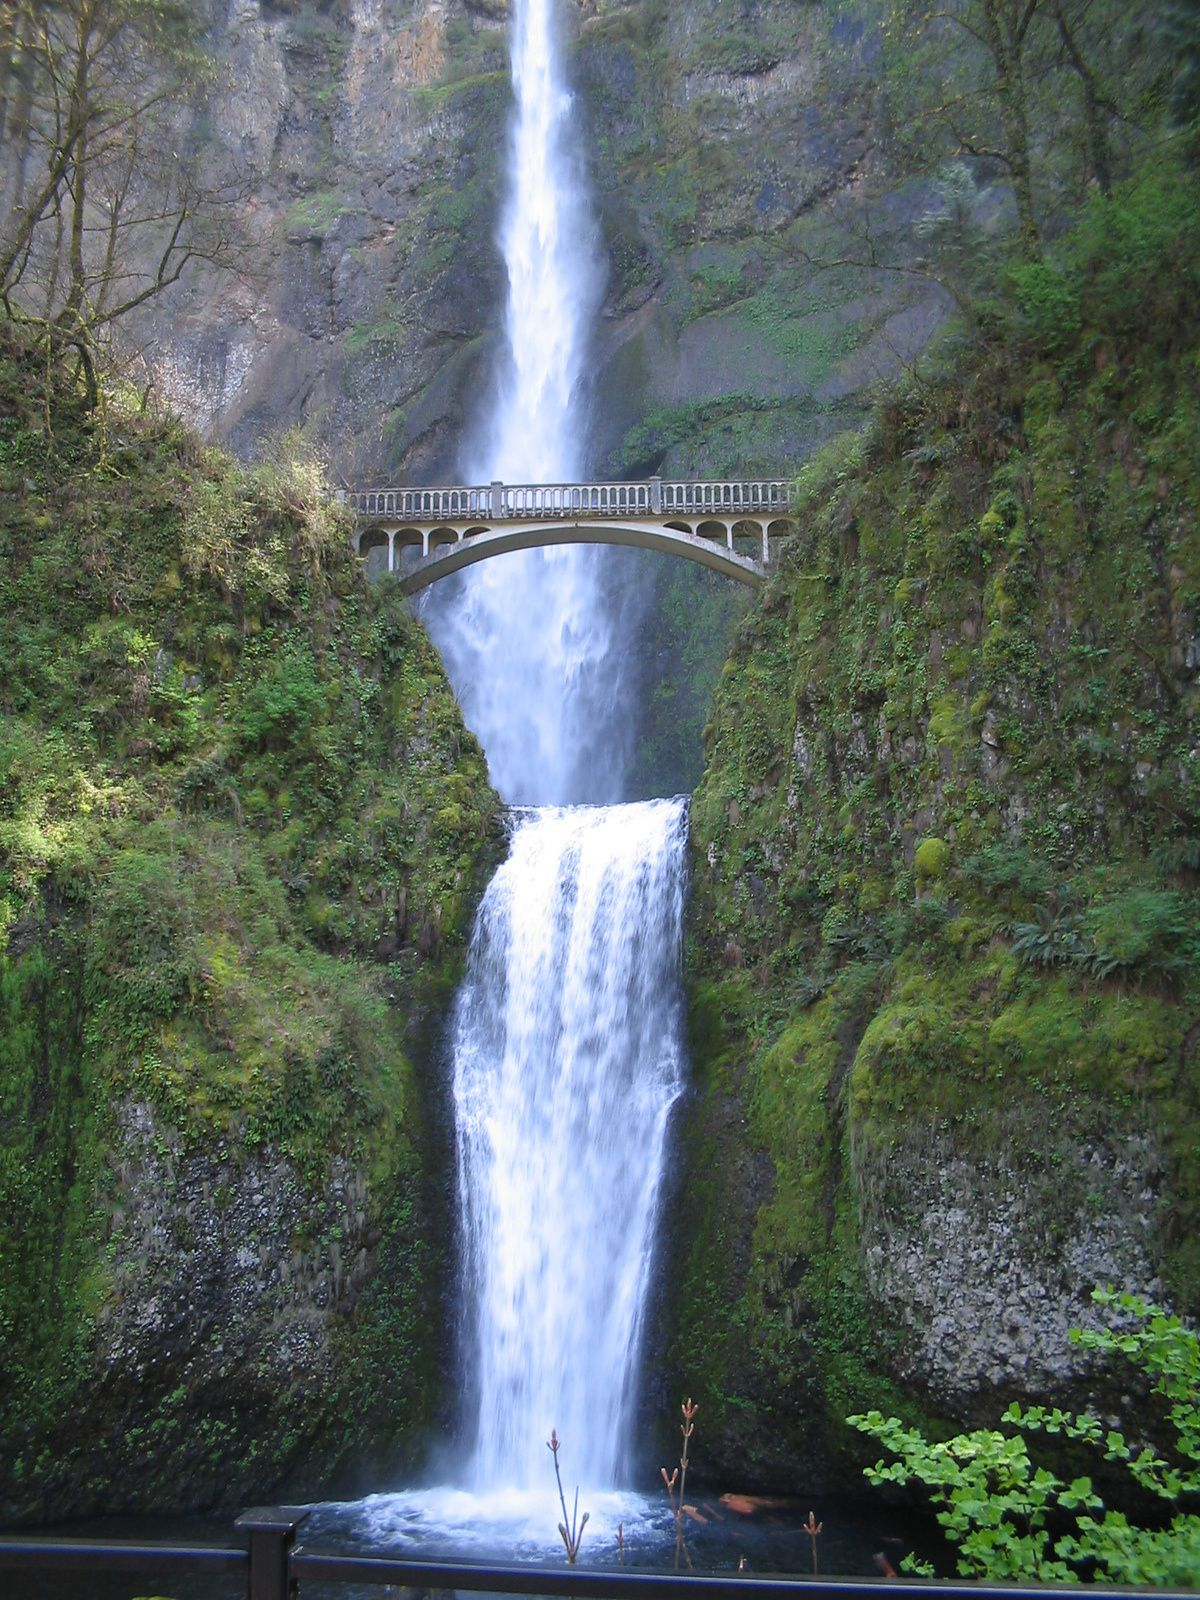 The highest waterfall in the State of Oregon, Multnomah Falls, viewed from the bottom- Lower Falls and part of Upper Falls / Multnomah Falls. photo David Benbennick